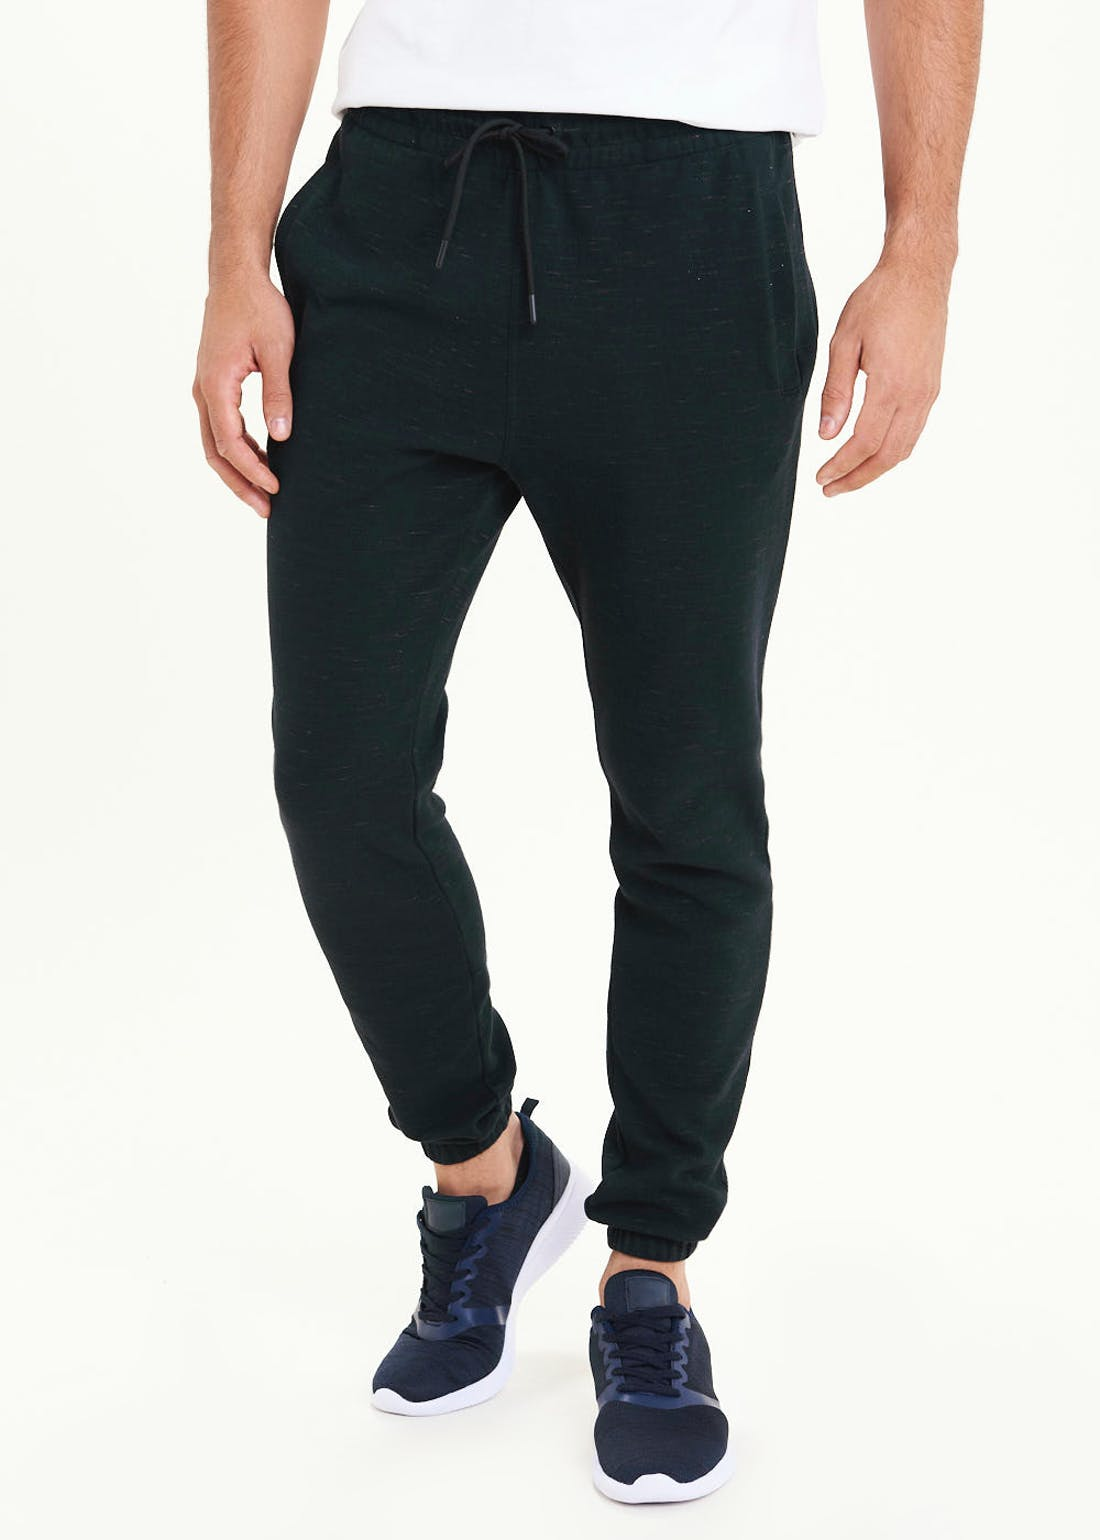 US Athletic Space Dye Cuffed Joggers